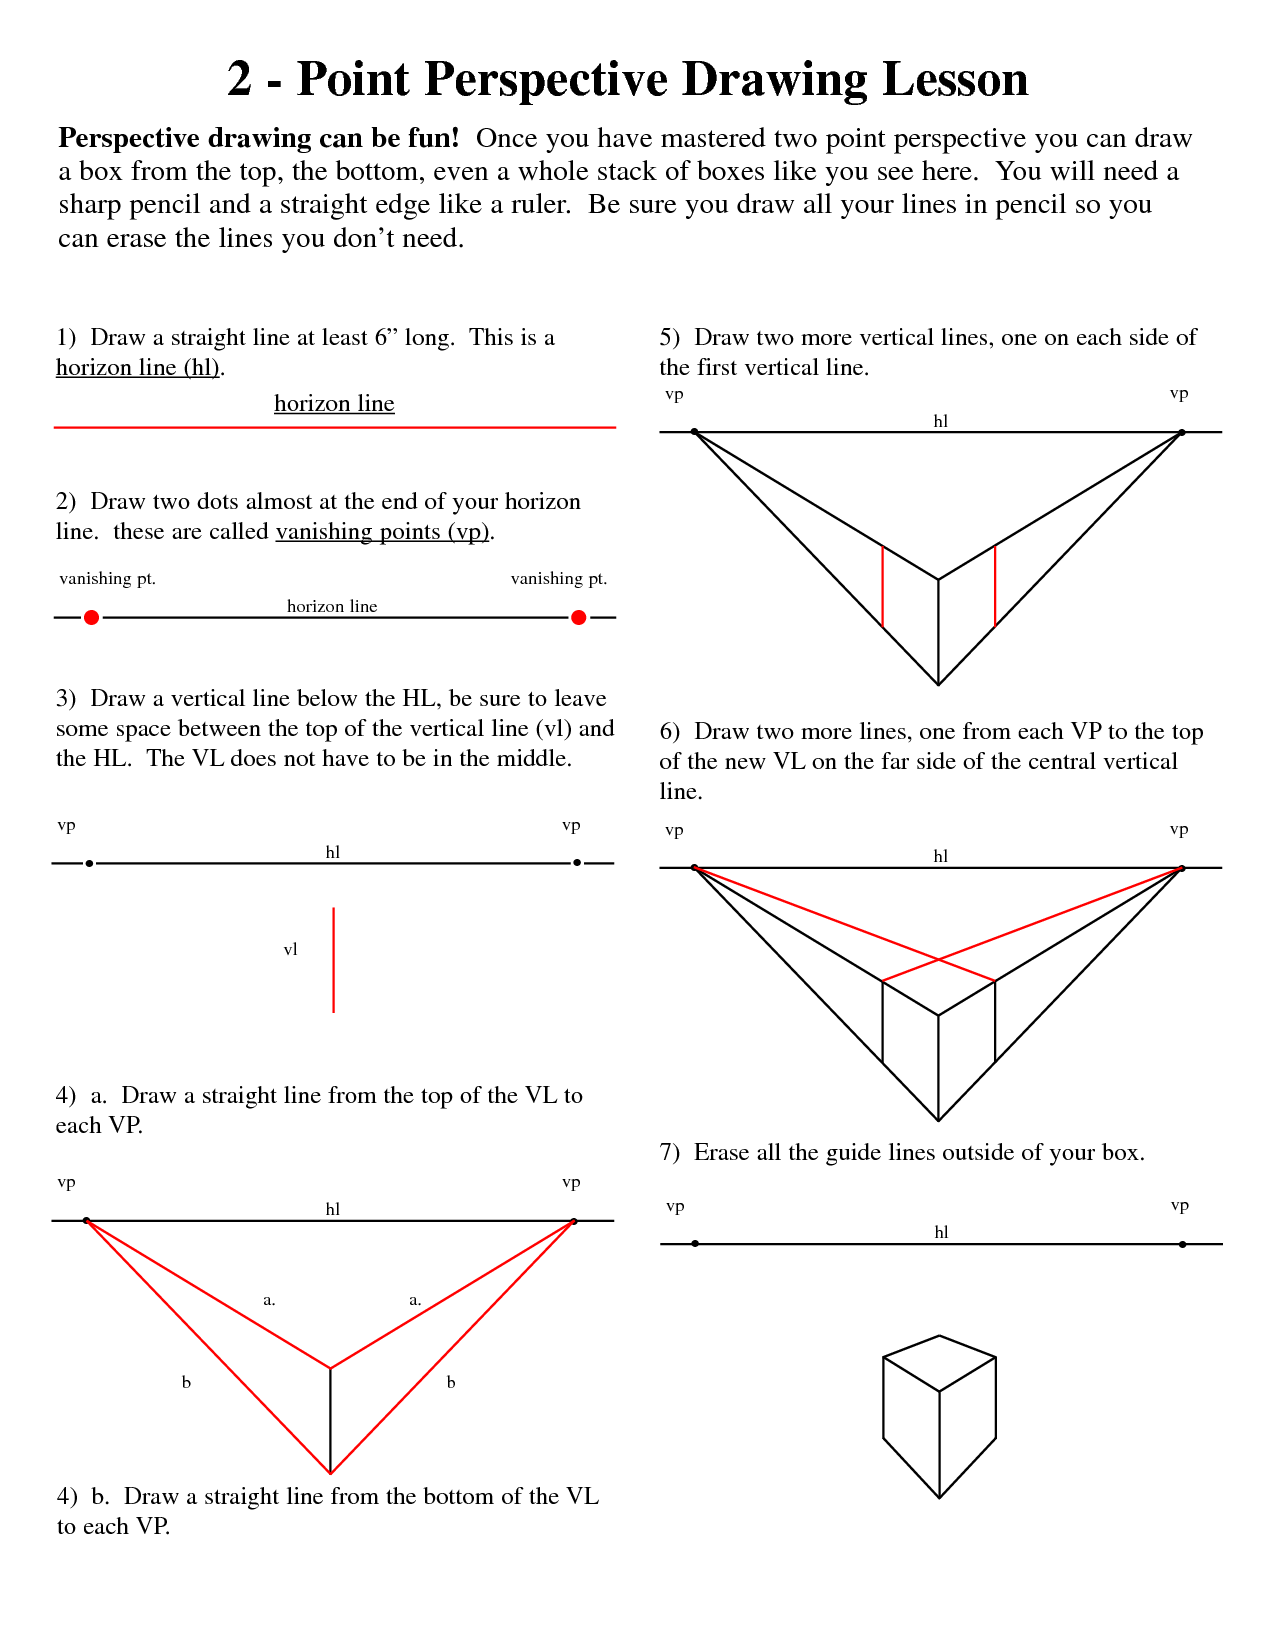 2 Point Perspective Lesson Plan Template